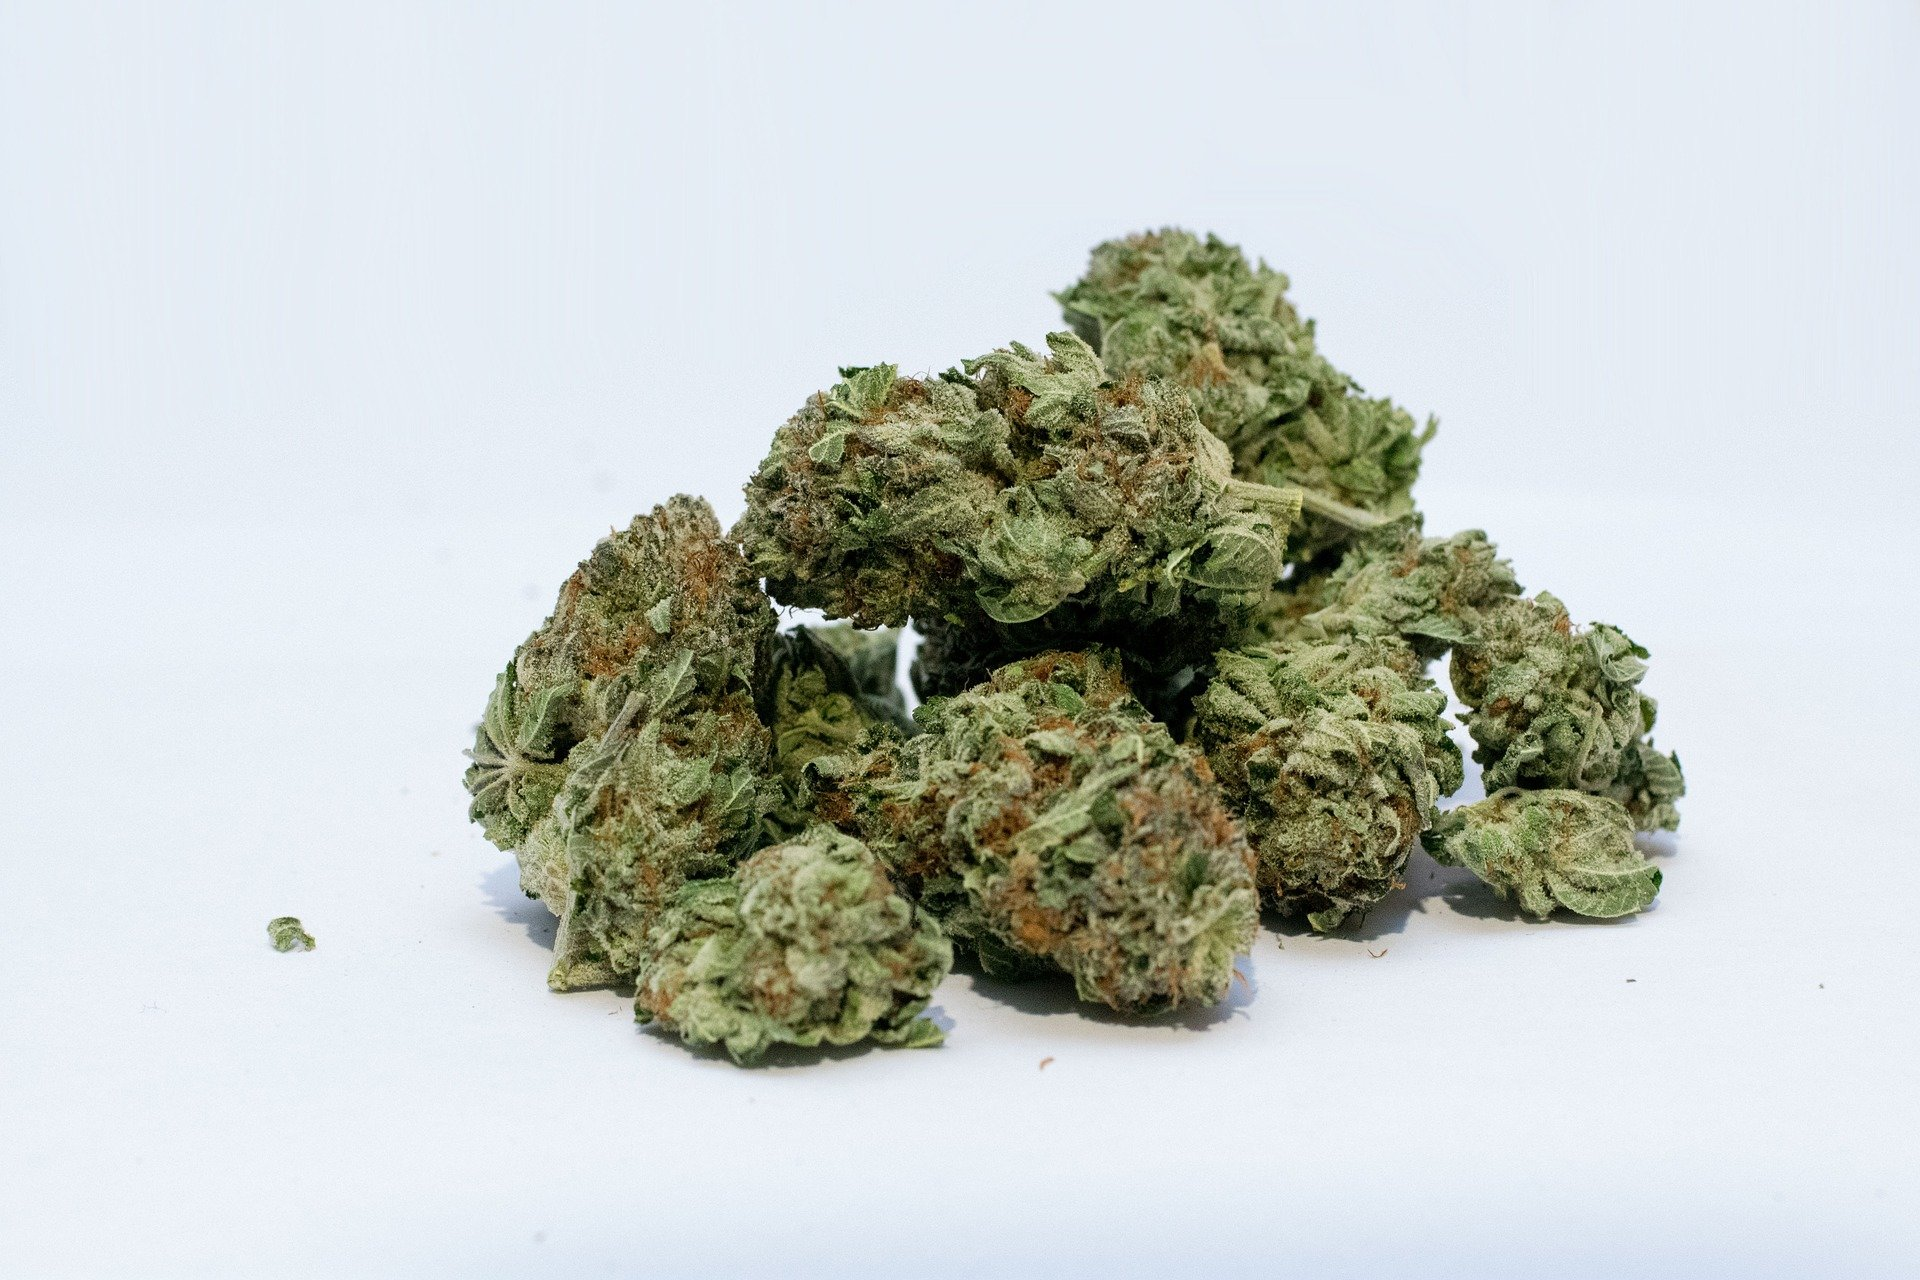 photo of Cannabis labels often wrong and misleading image